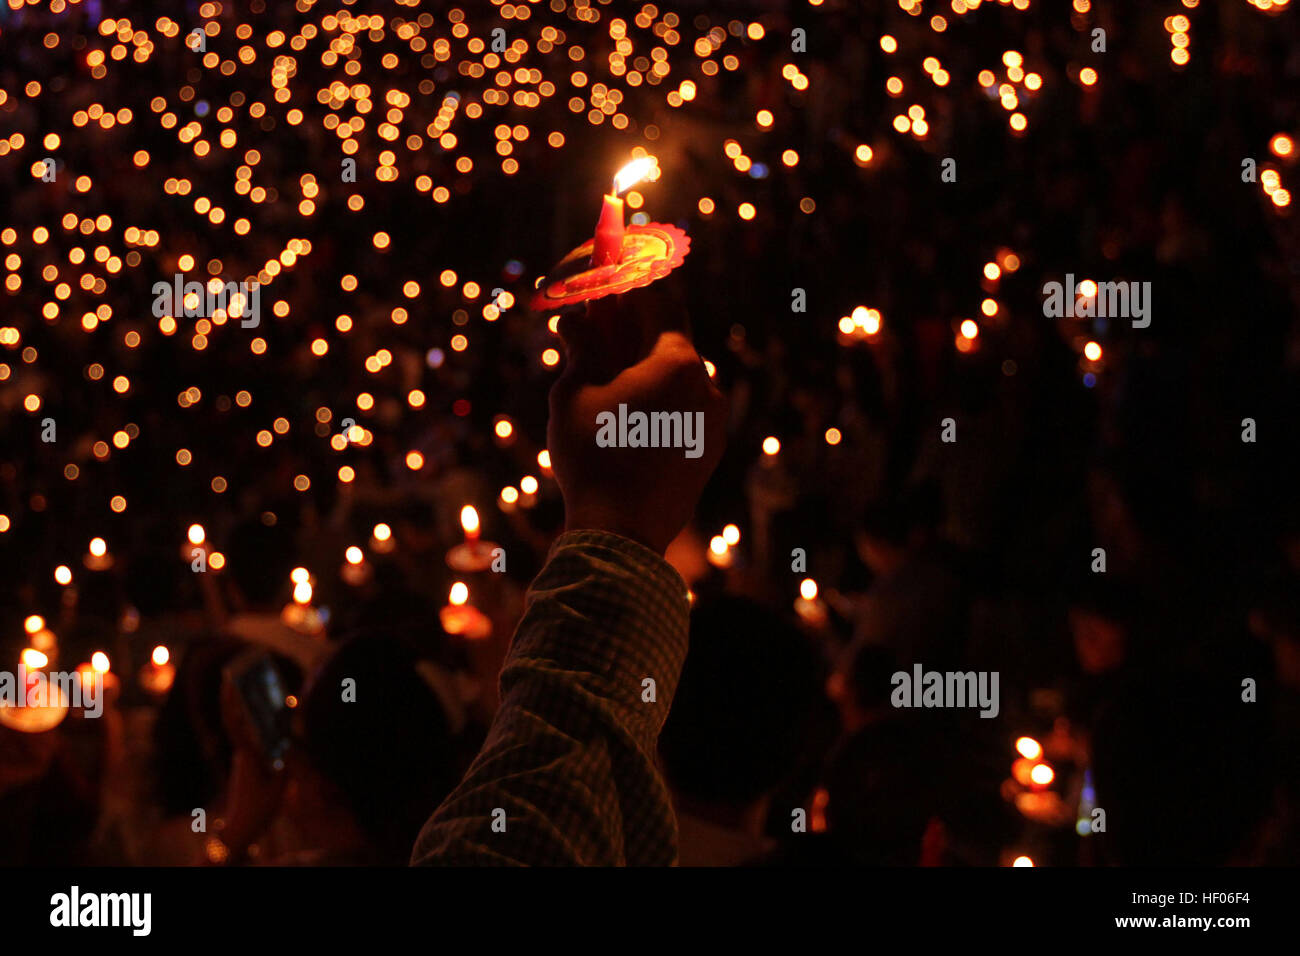 Palembang, Indonesia. 24th Dec, 2016. People hold candles while celebrating the Christmas Eve at a church in Palembang, - Stock Image